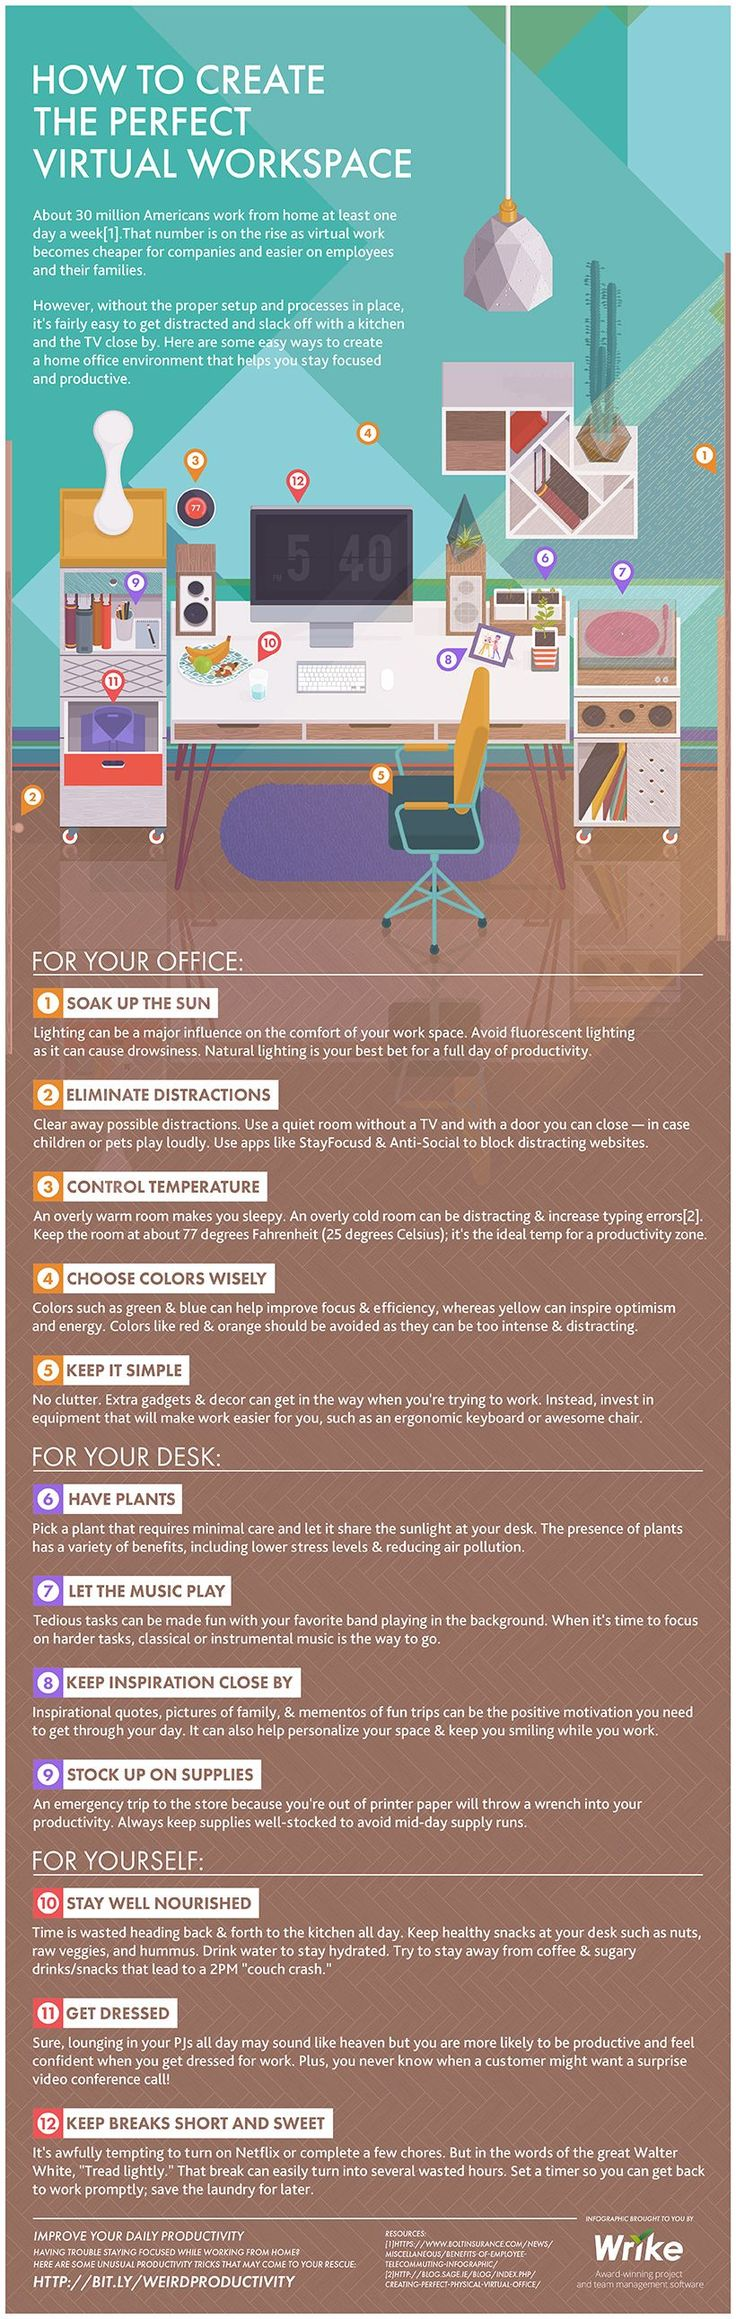 How to Create Your Perfect Remote Work Environment (#Infographic)